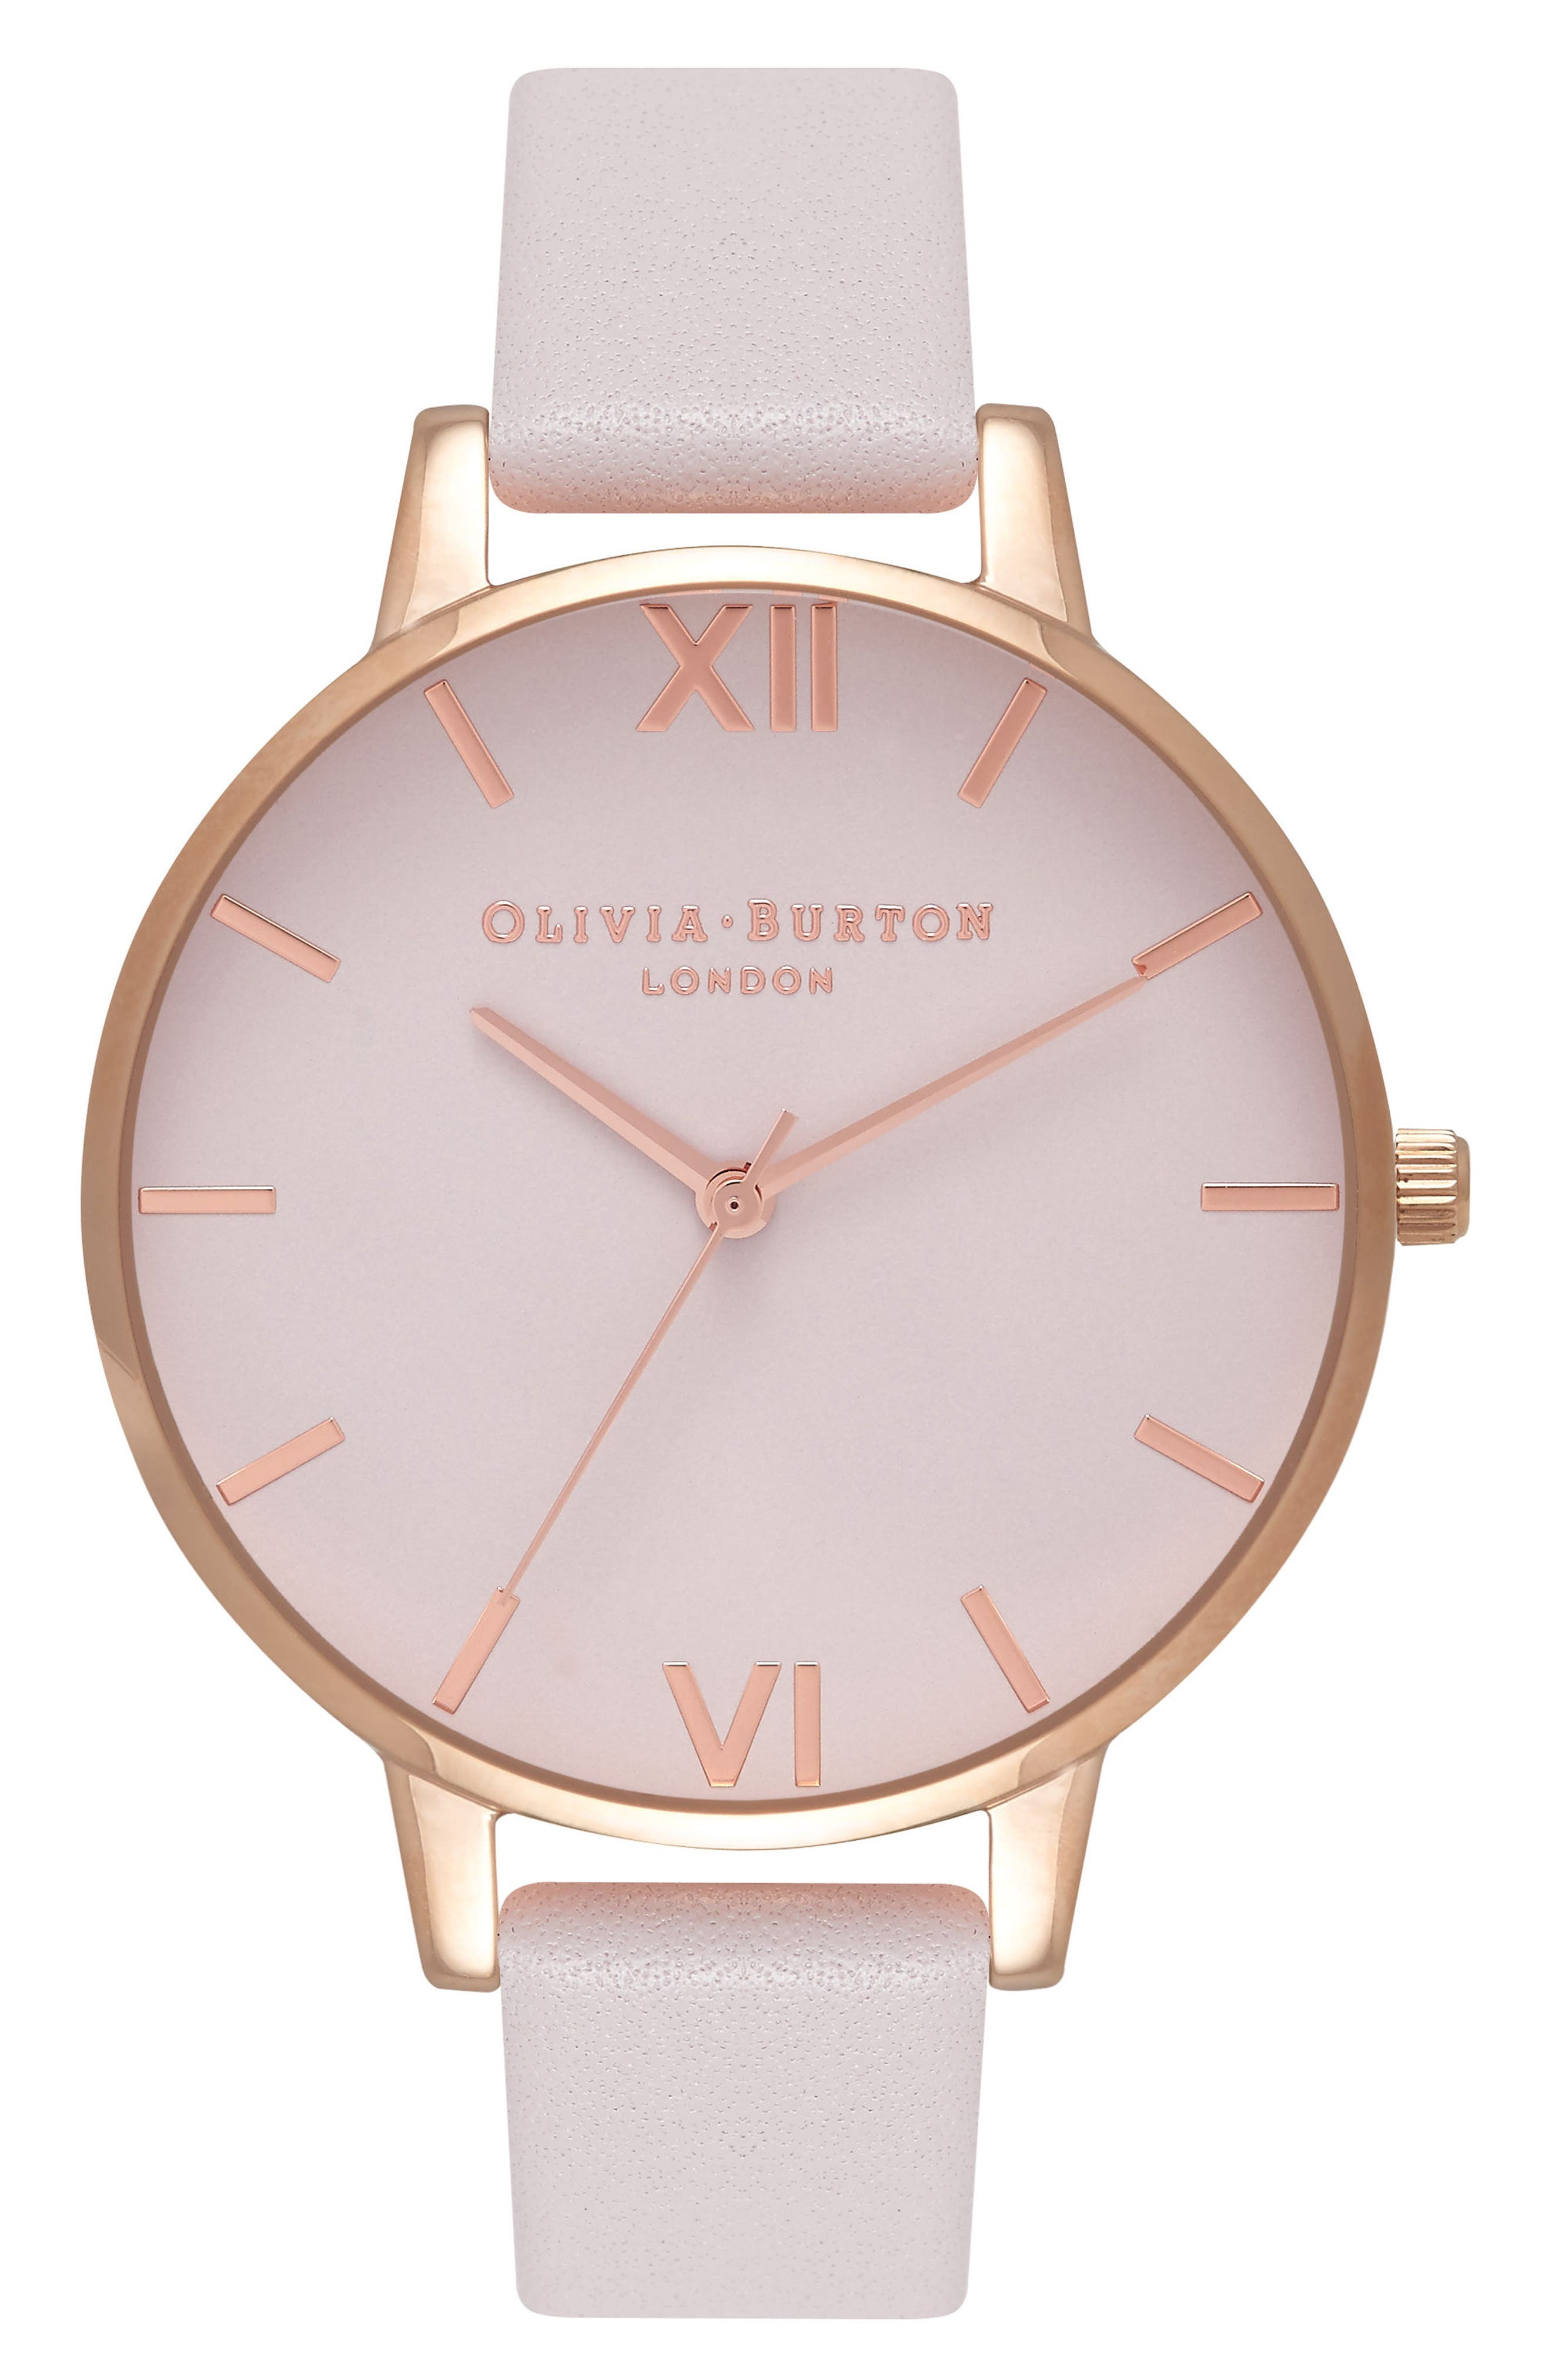 Case Cuff Leather Strap Watch, 38mm,                             Alternate thumbnail 8, color,                             BLUSH/ WHITE/ ROSE GOLD